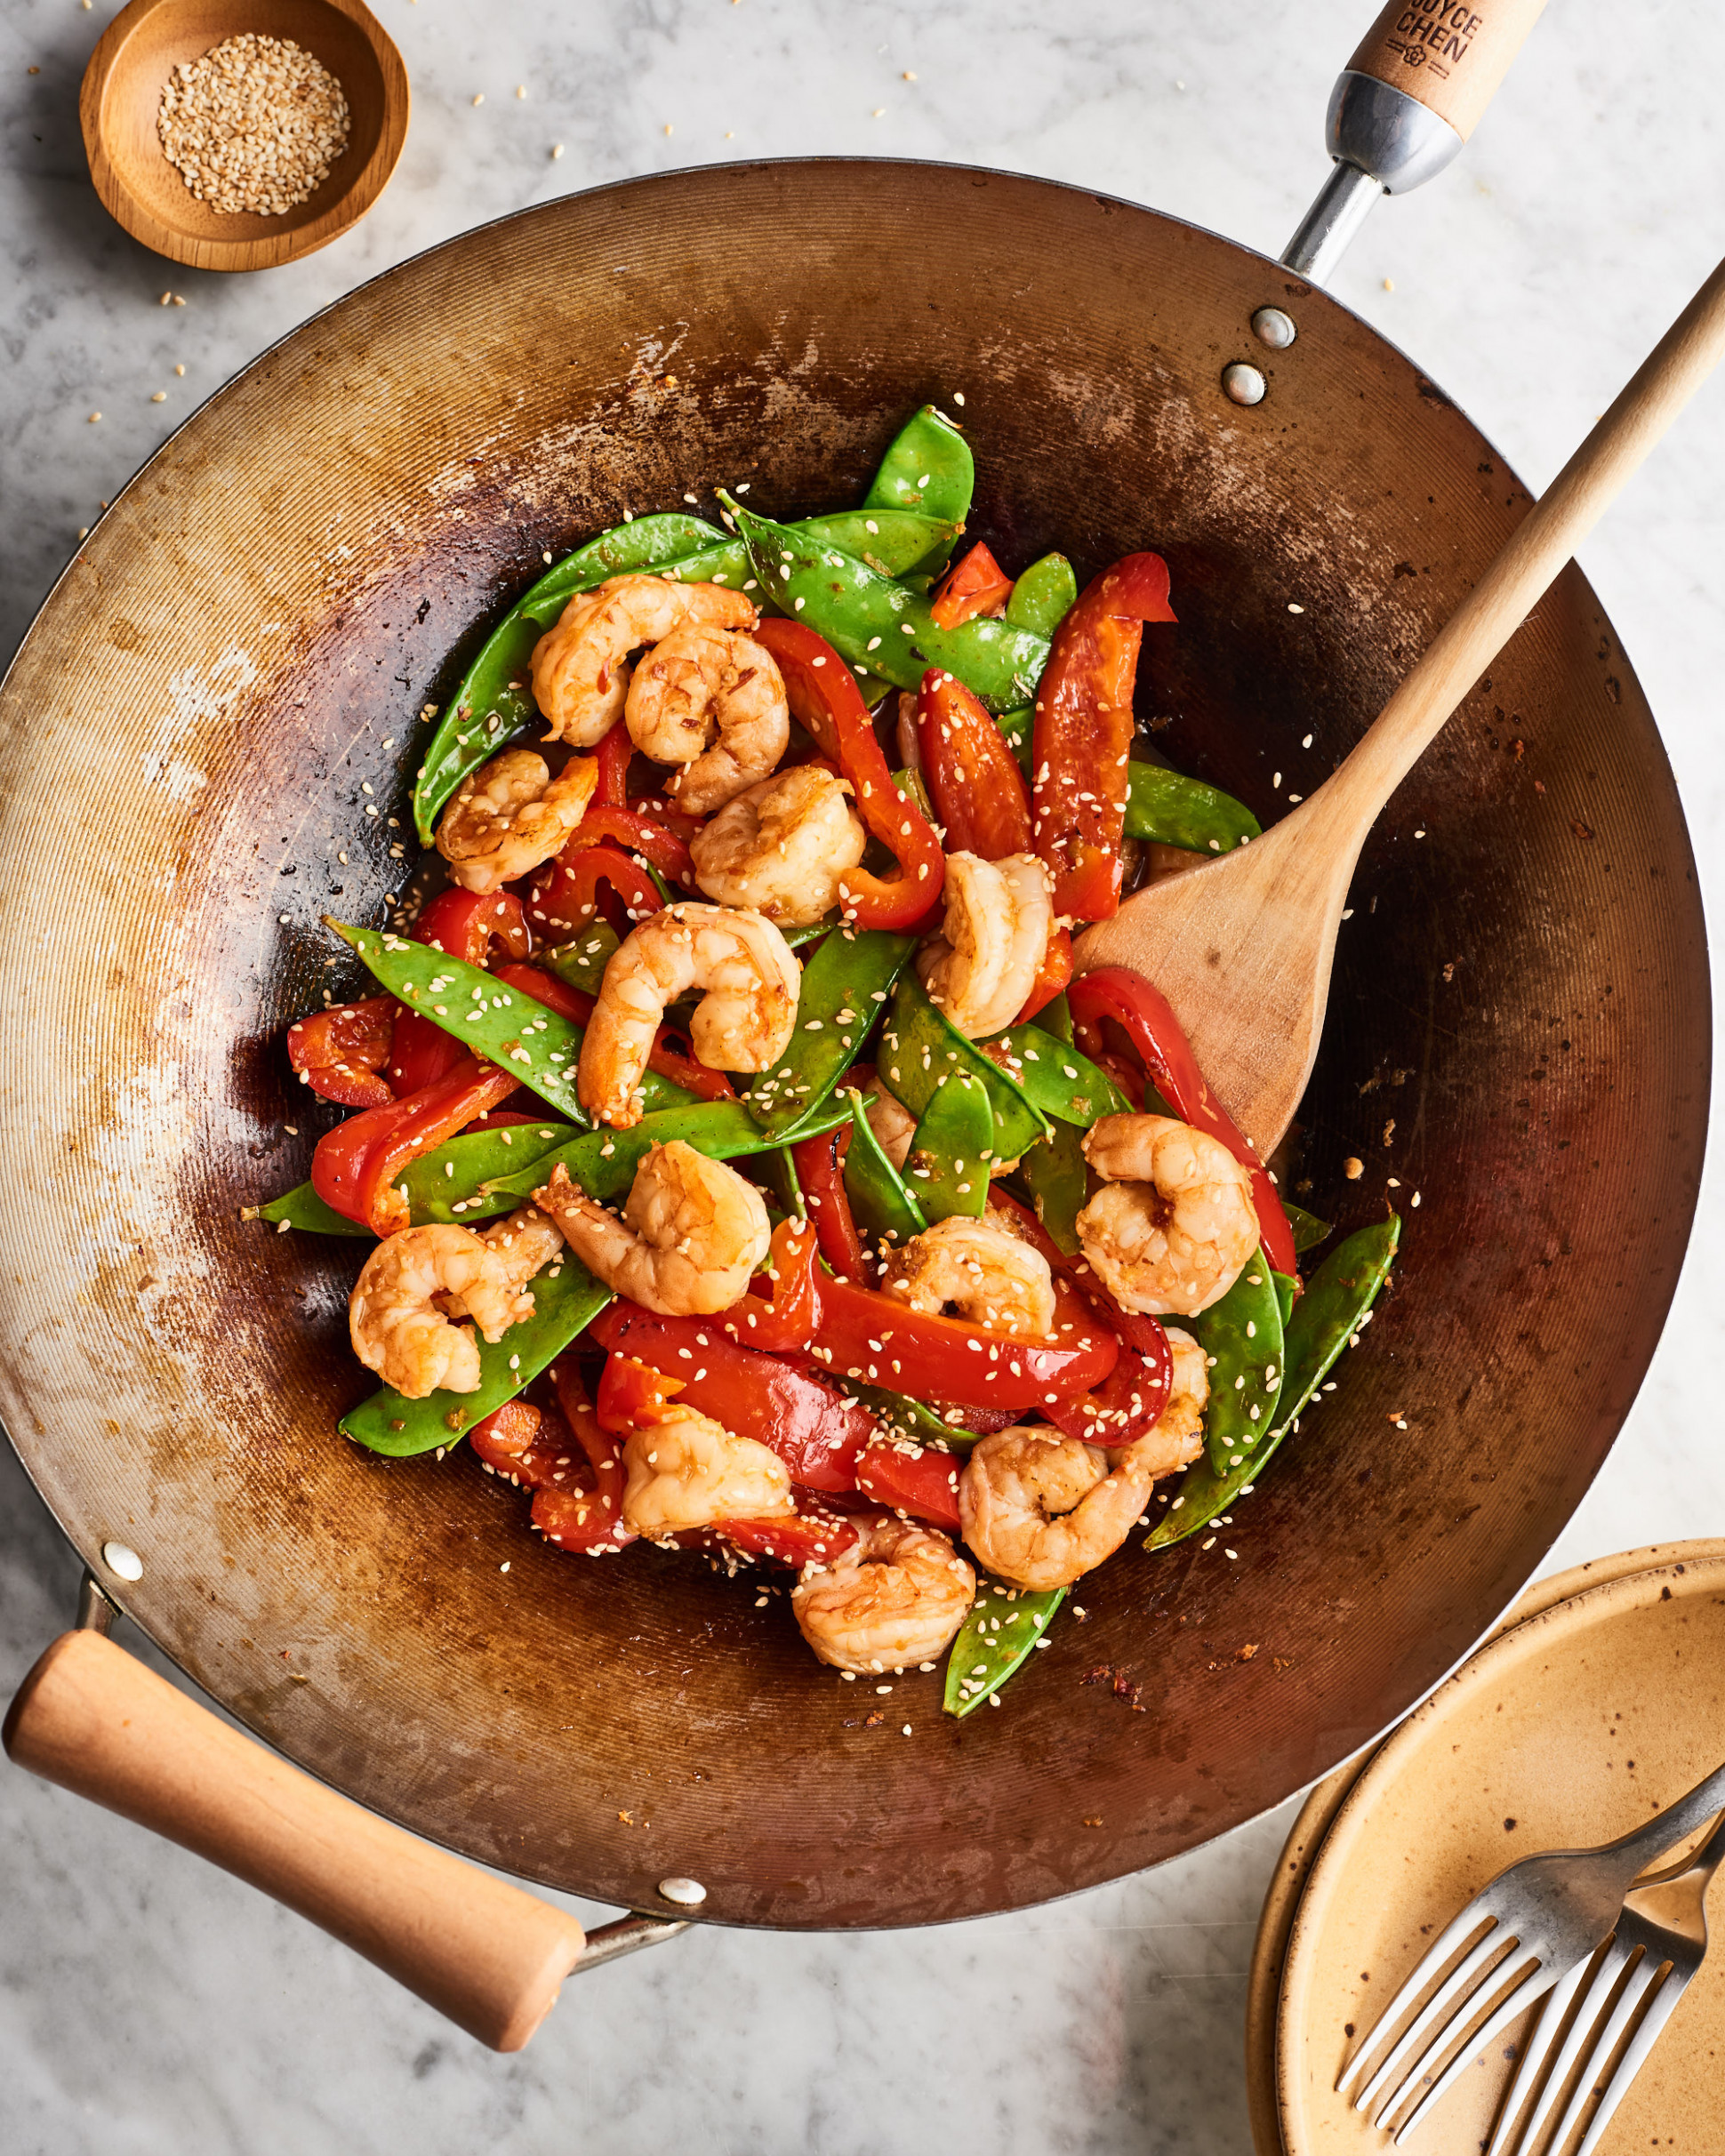 12-Minute Shrimp & Veggie Stir-Fry - recipes vegetarian stir fry